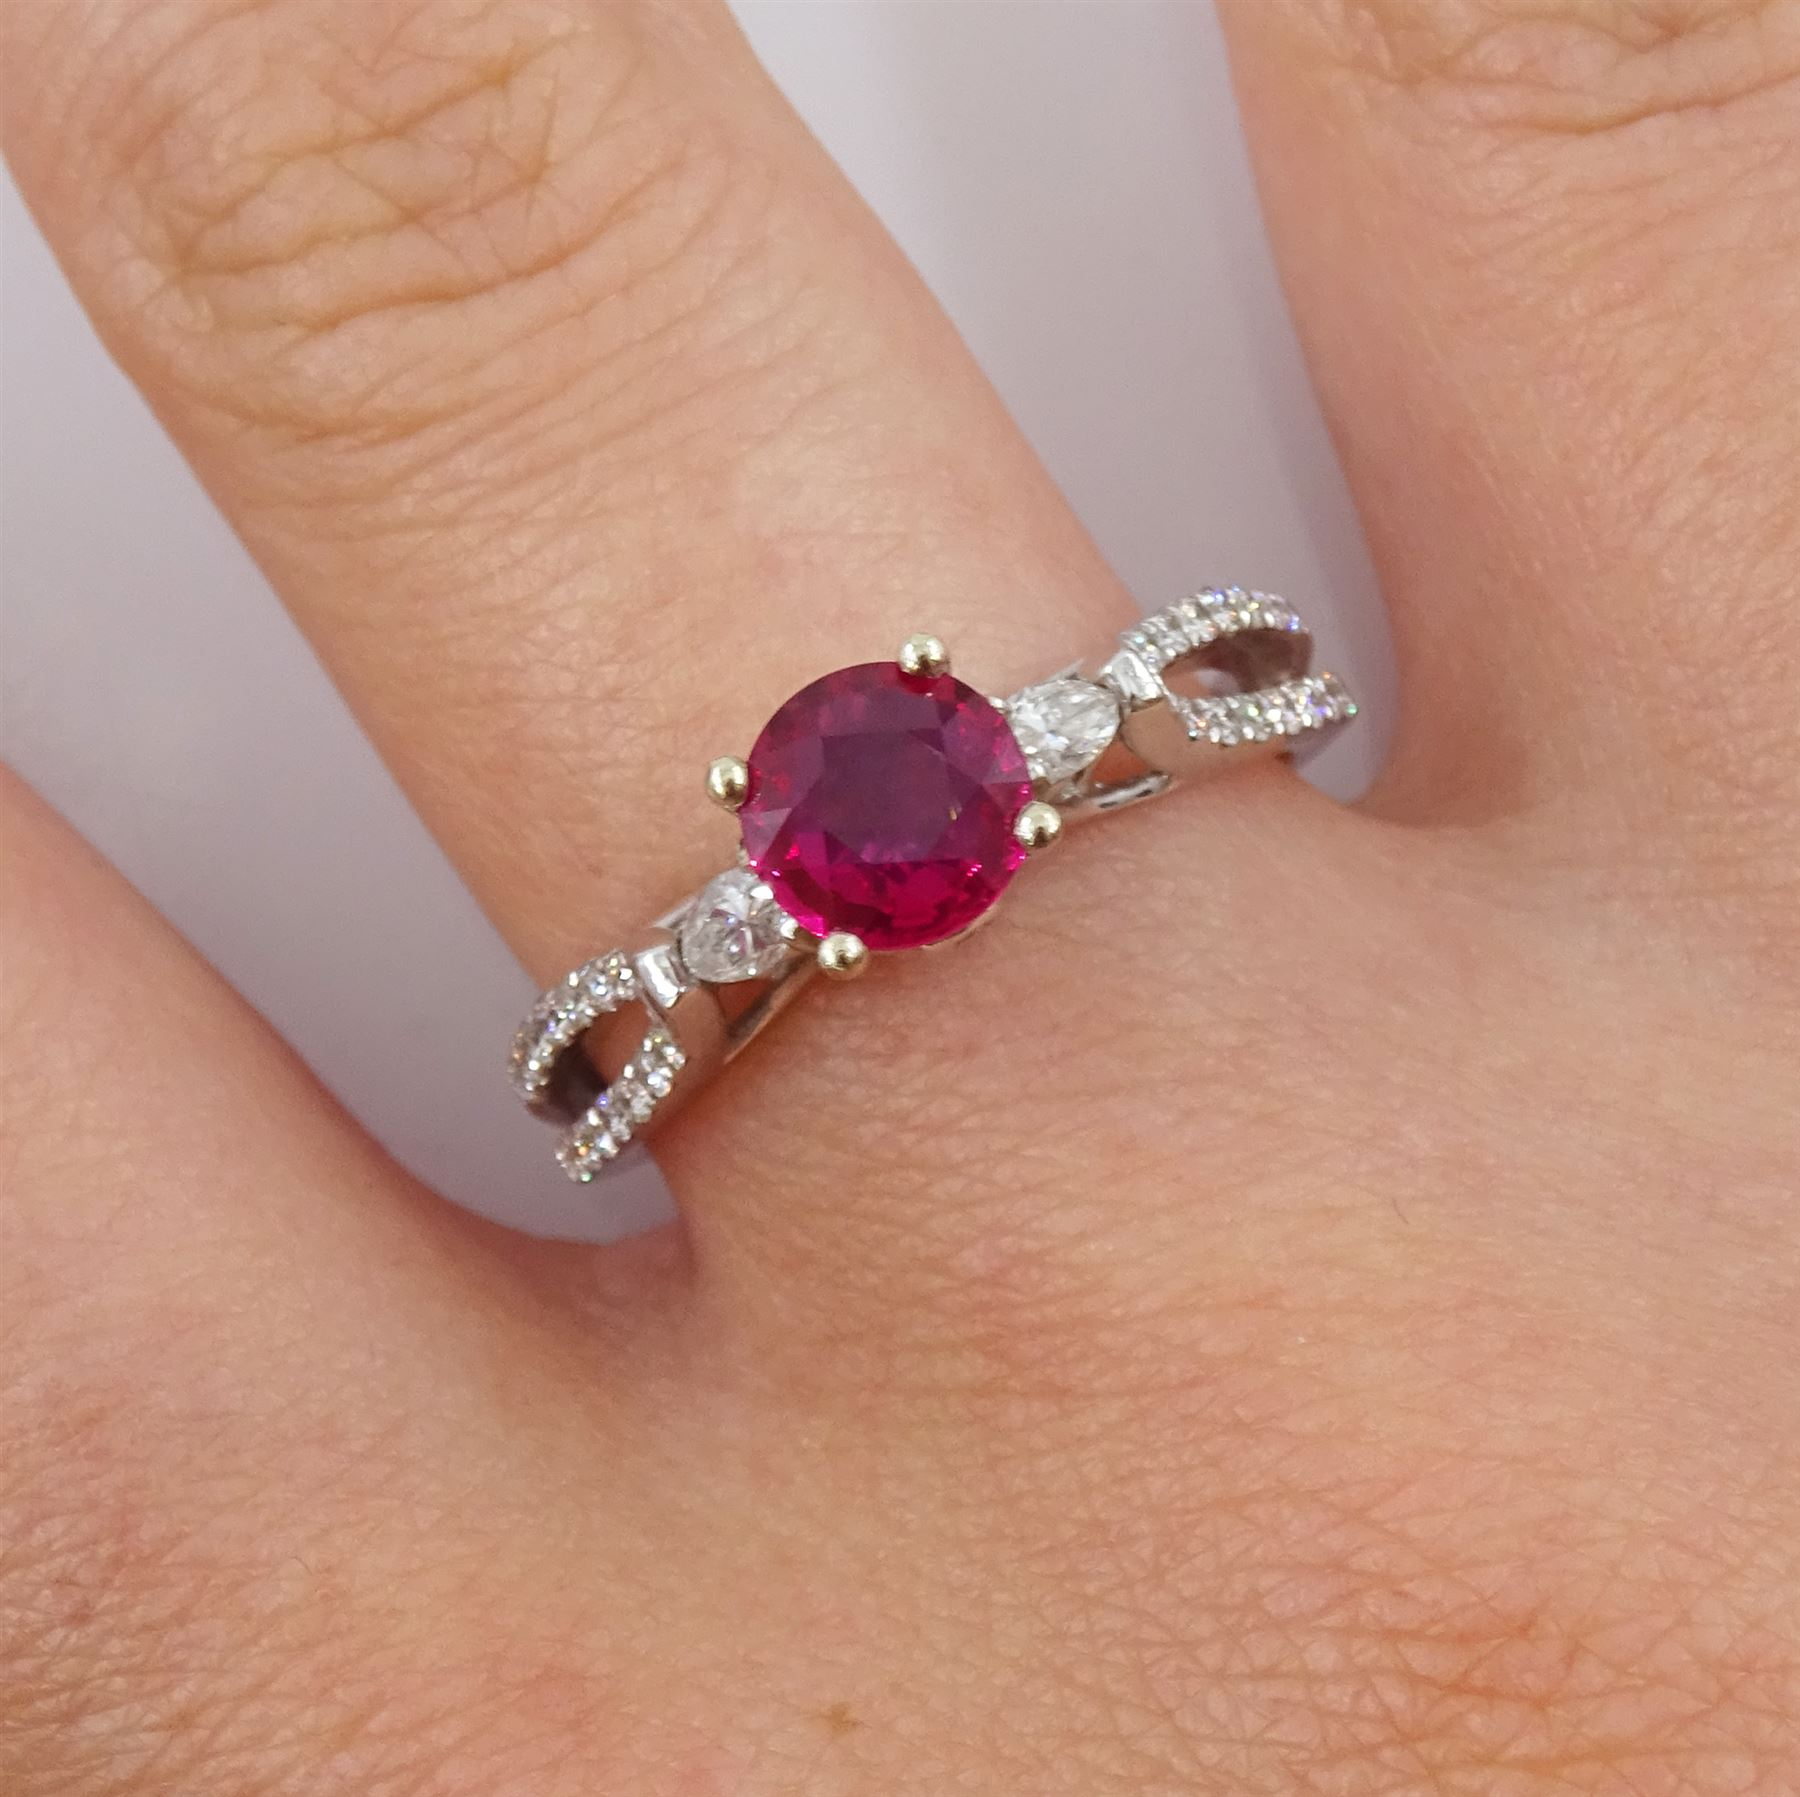 18ct white gold round ruby ring - Image 2 of 4